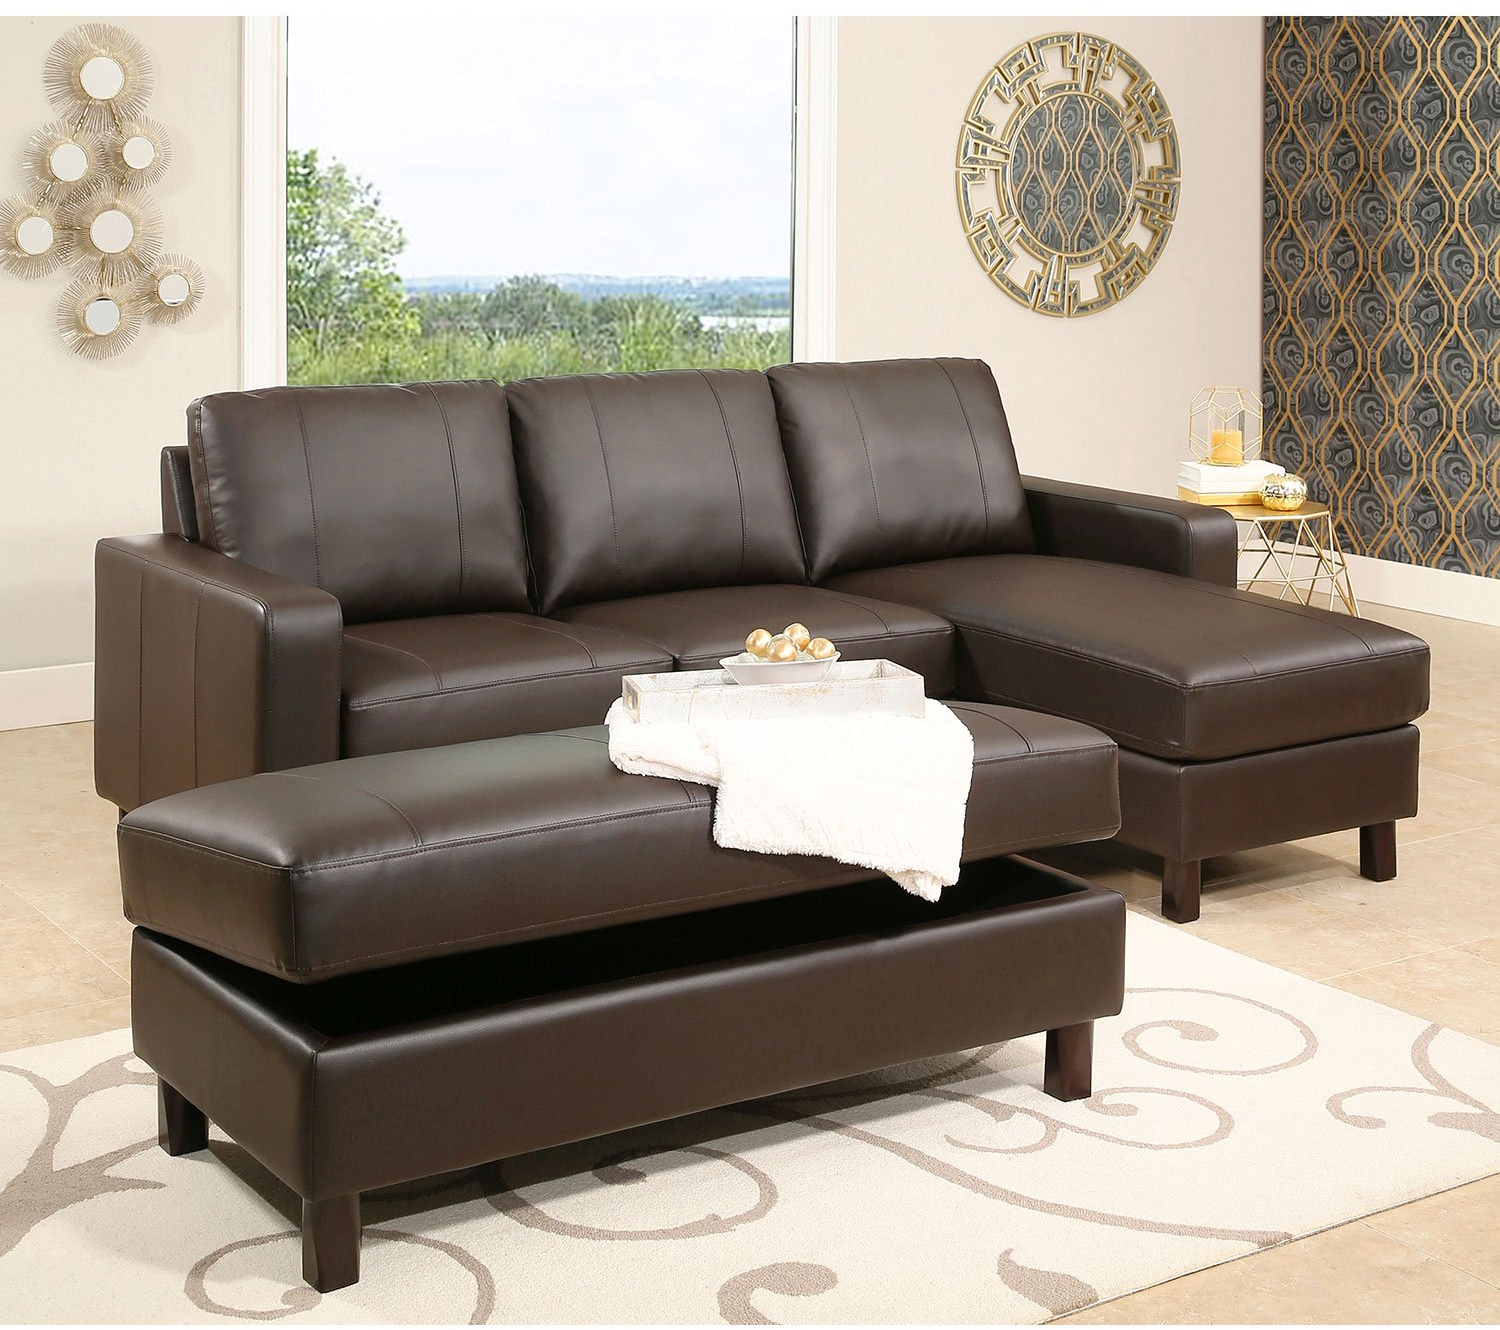 Excellent Details About Abbyson Living Room Brown Leather Reversible Sectional Sofa And Storage Ottoman Gmtry Best Dining Table And Chair Ideas Images Gmtryco